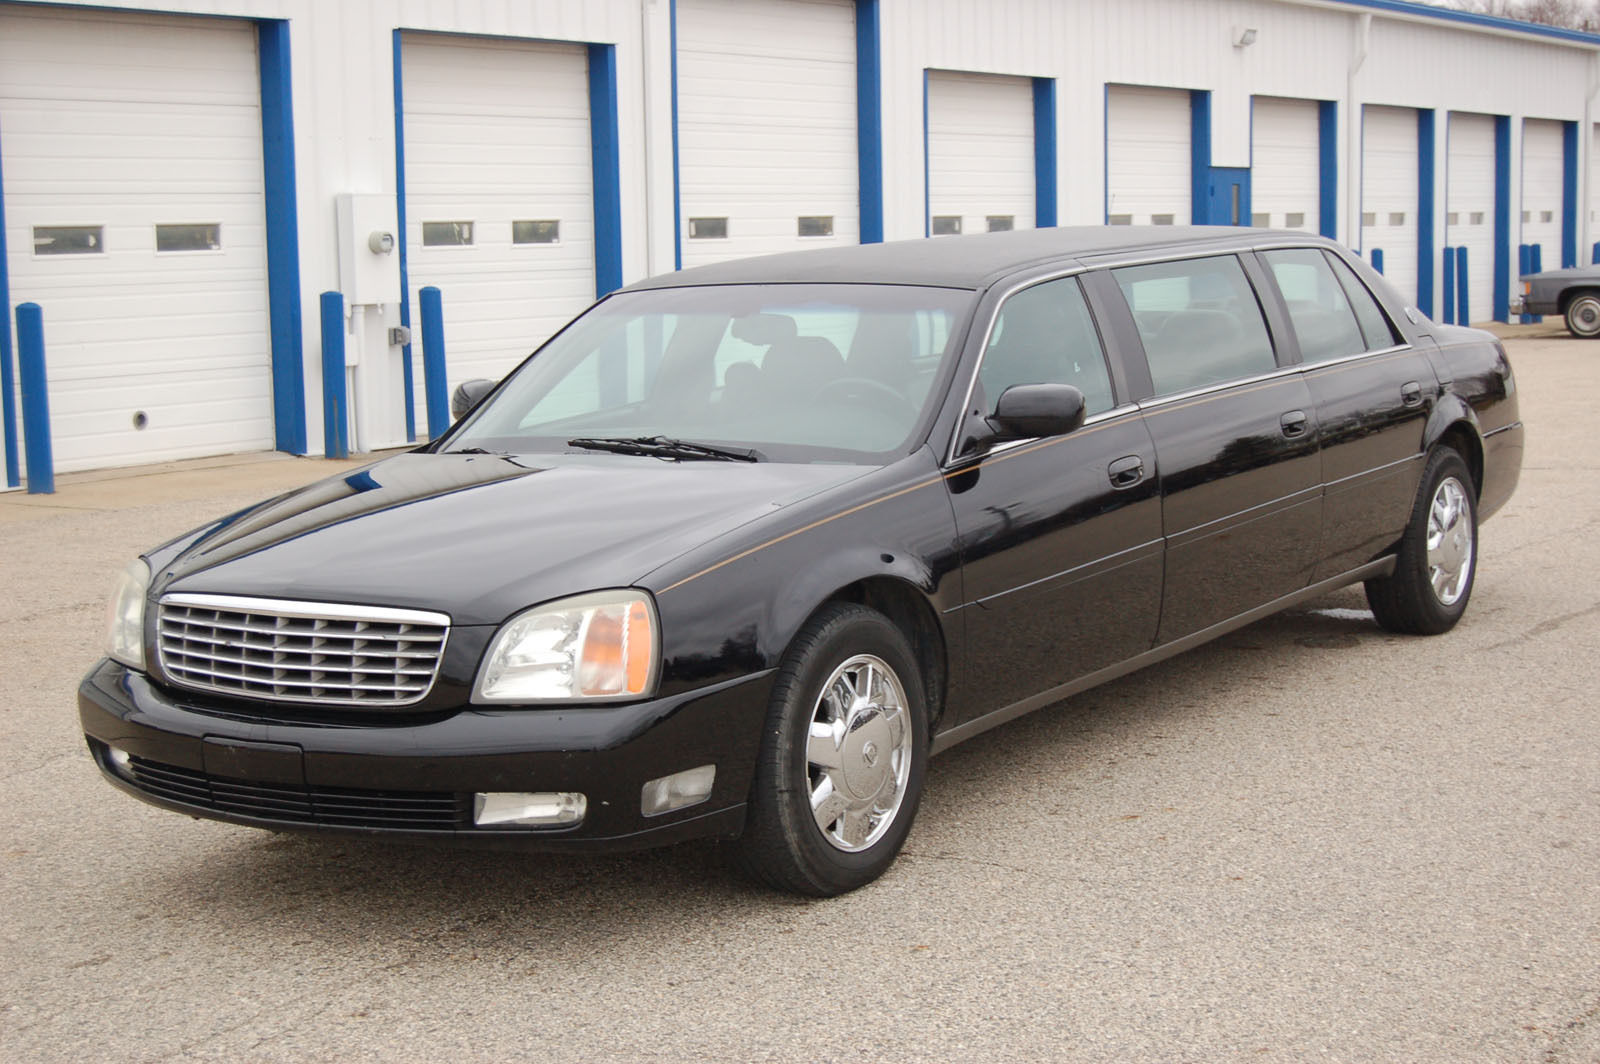 2002 Cadillac Deville Limousine Six Door Limousine by Sayers and Scovill for sale